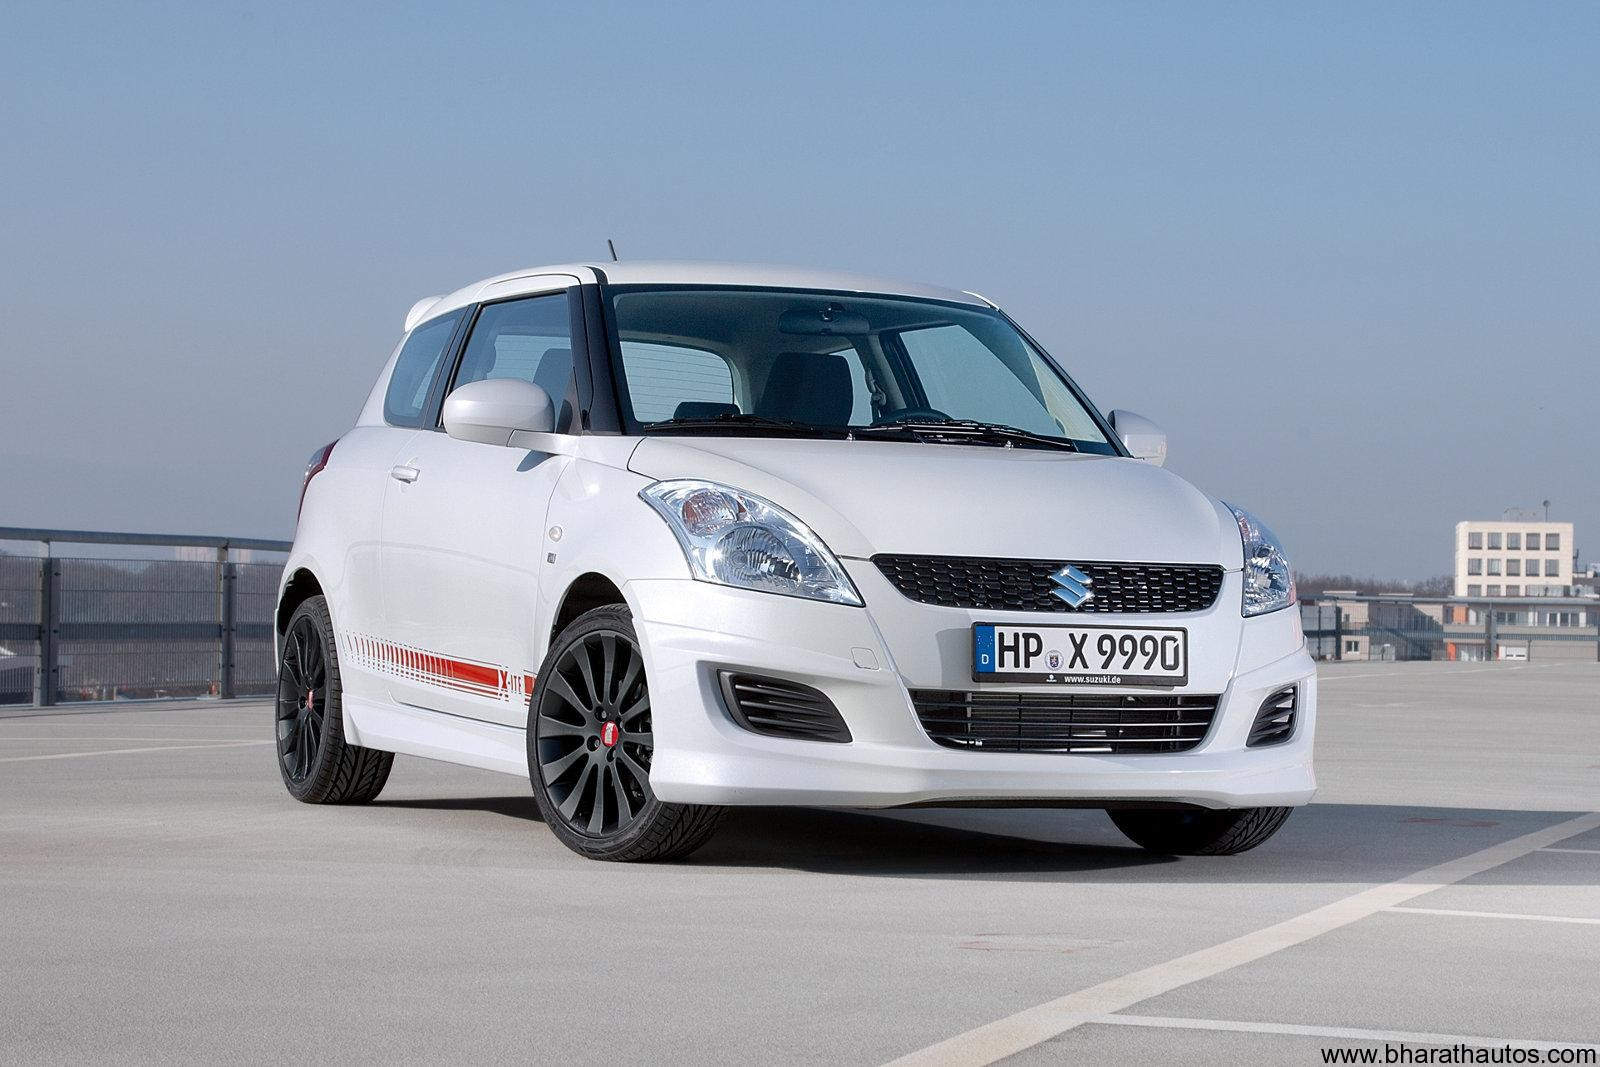 Suzuki Swift X Ite Special Edition Unveiled In Germany